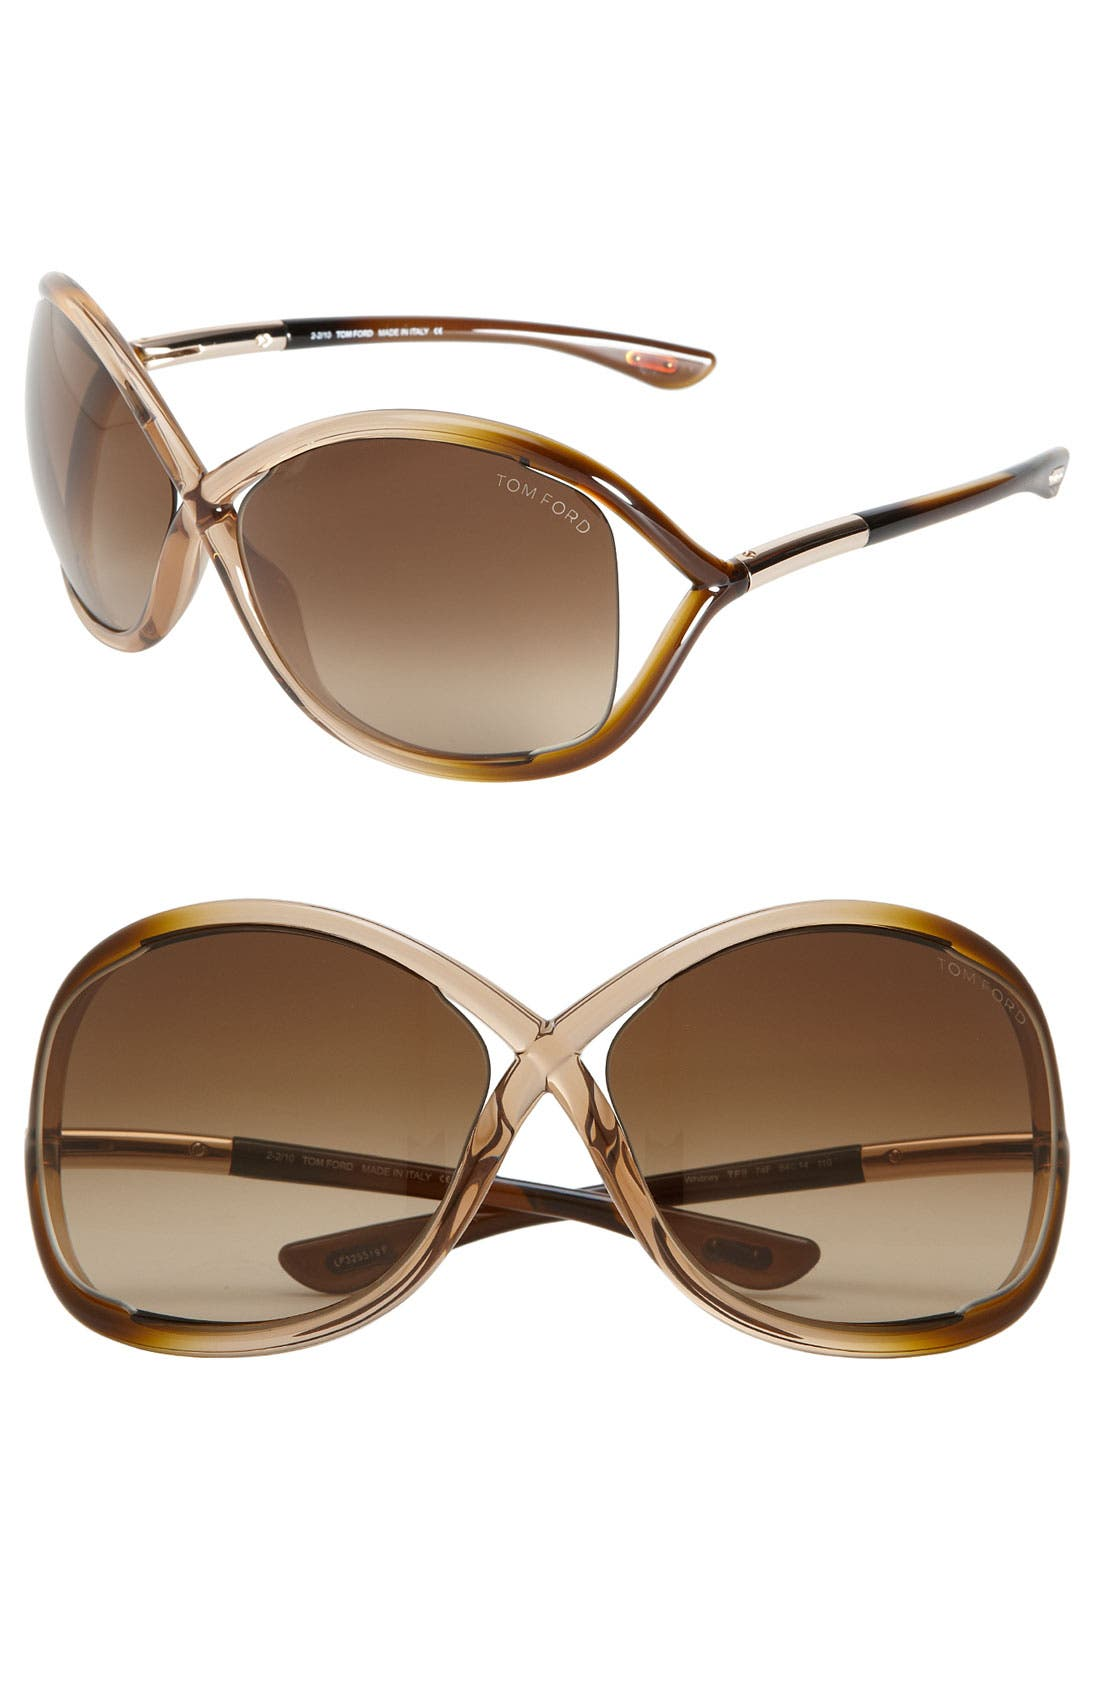 Main Image - Tom Ford 'Whitney' 64mm Open Side Sunglasses